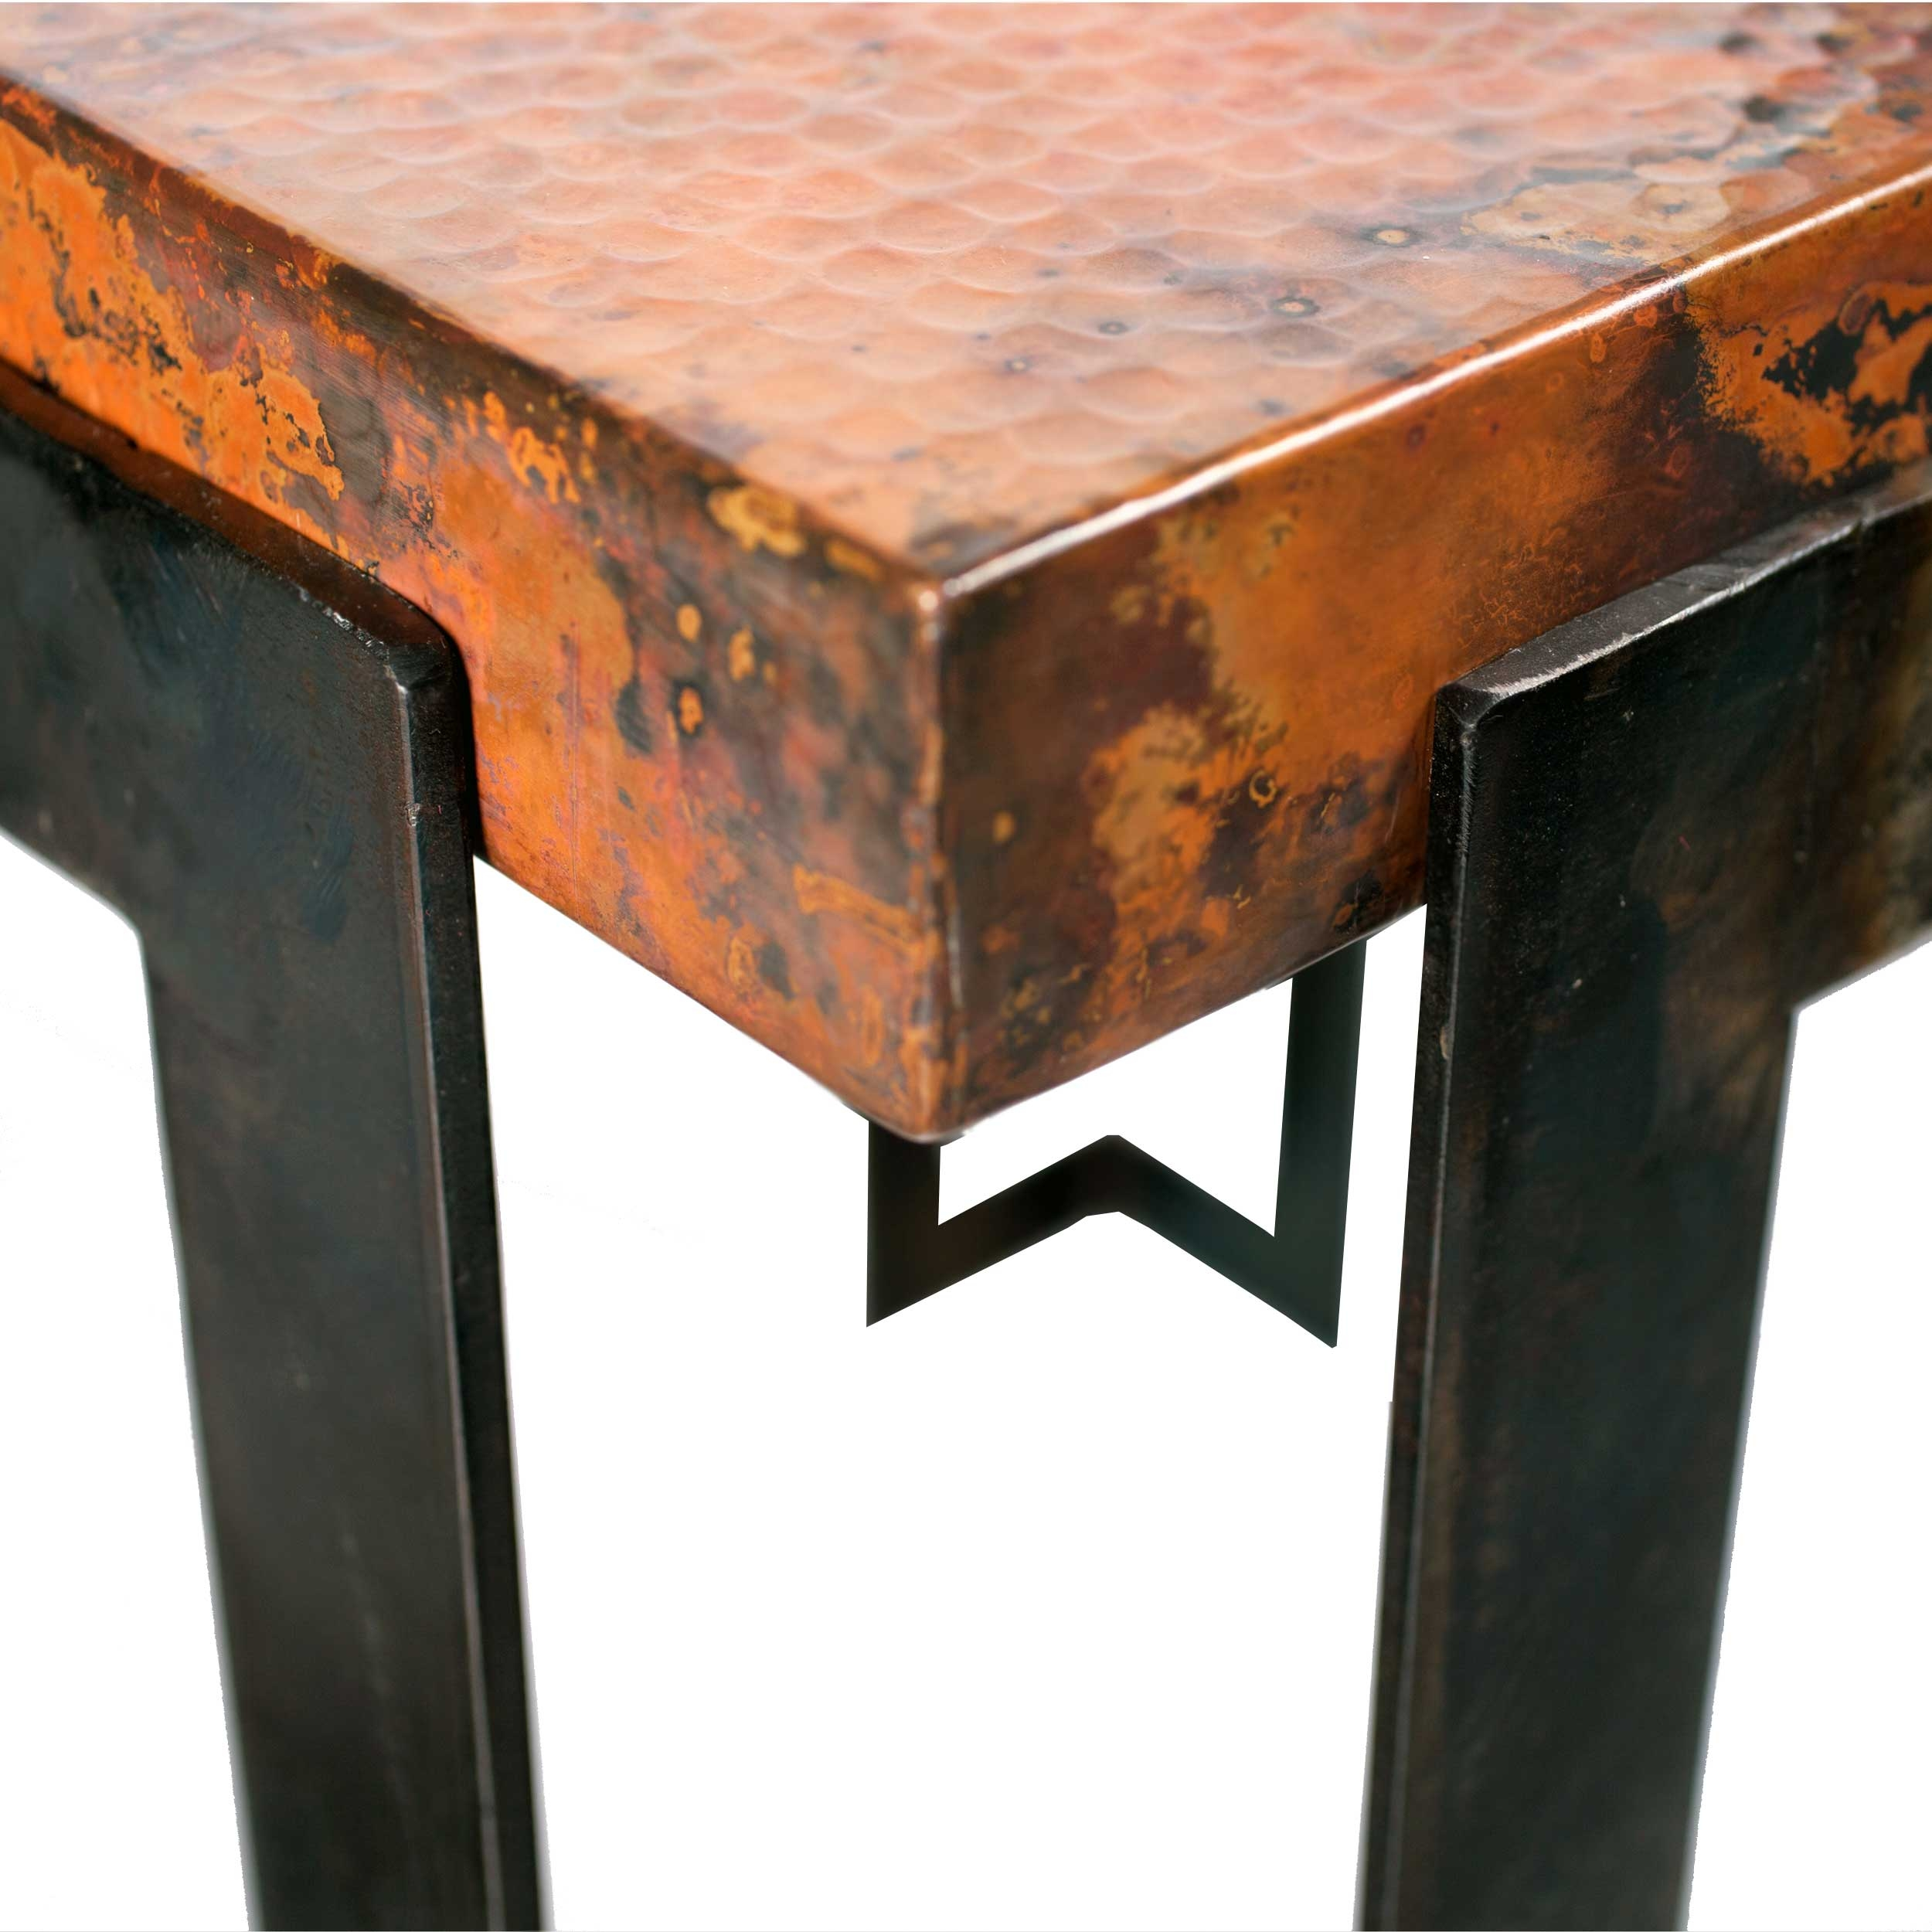 Copper Top Rectangular Coffee Table: Steel Strap Rectangle Dining Table With Copper Top